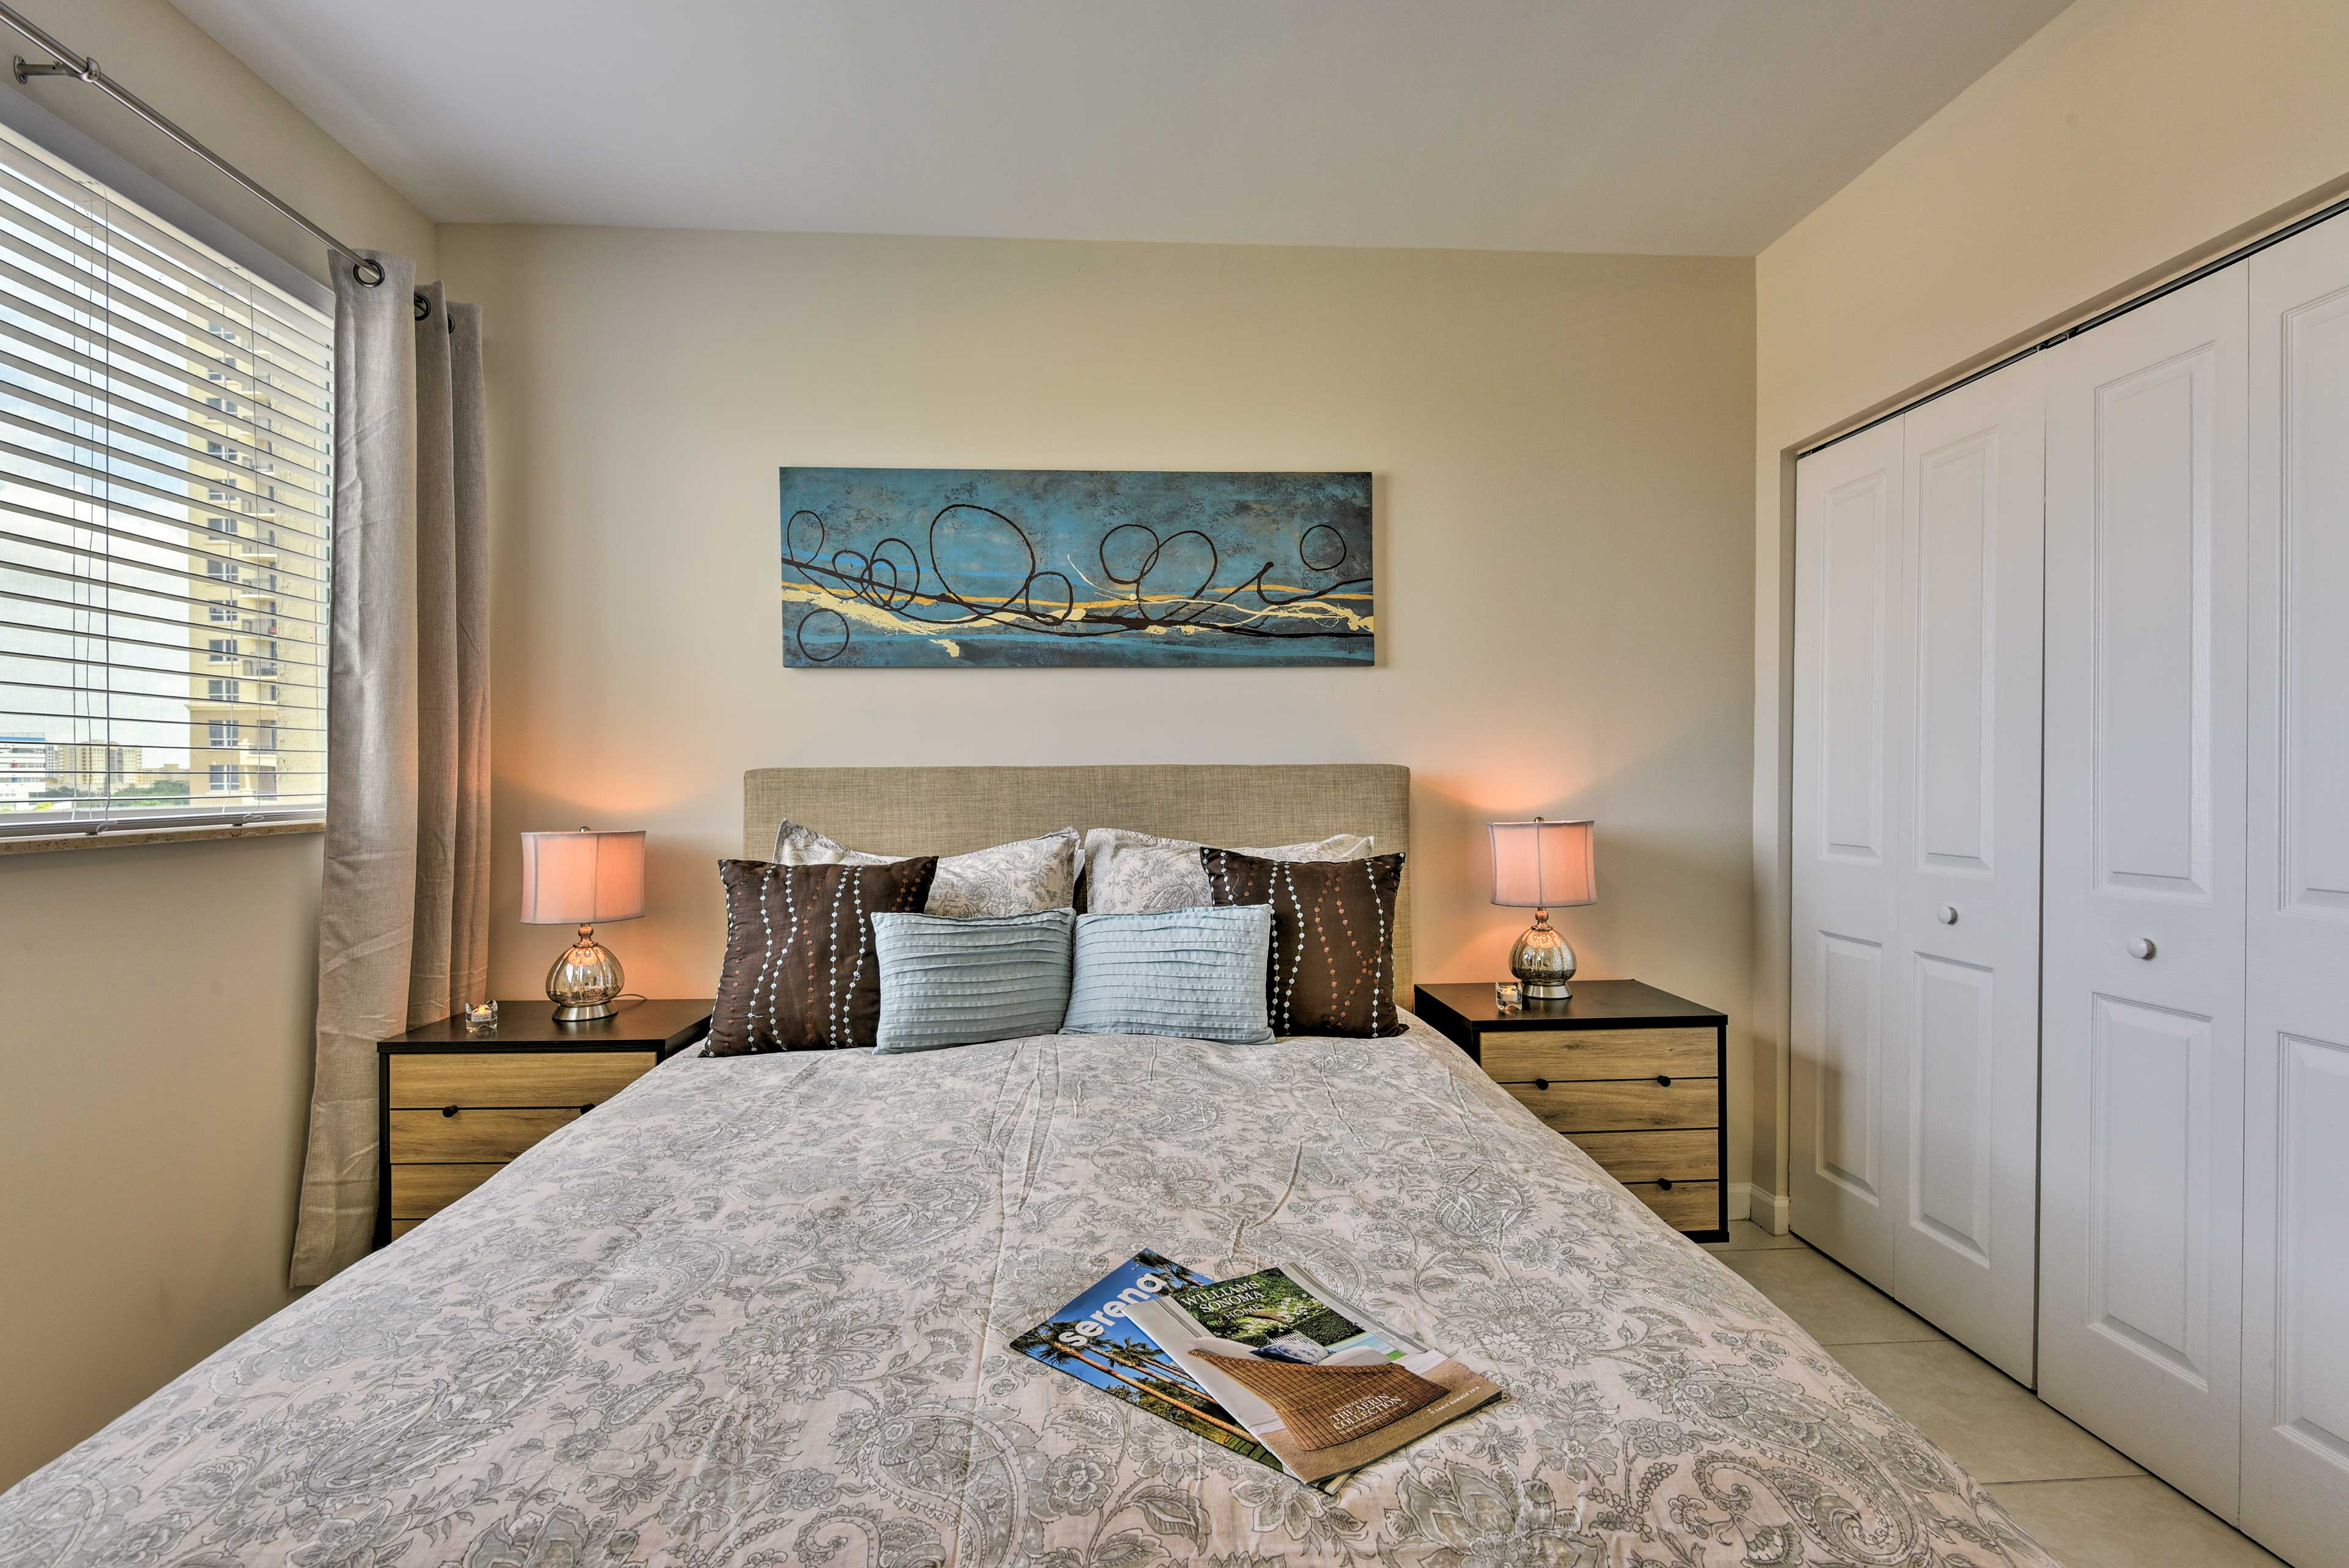 Fall back on the queen bed for a quiet night's sleep.